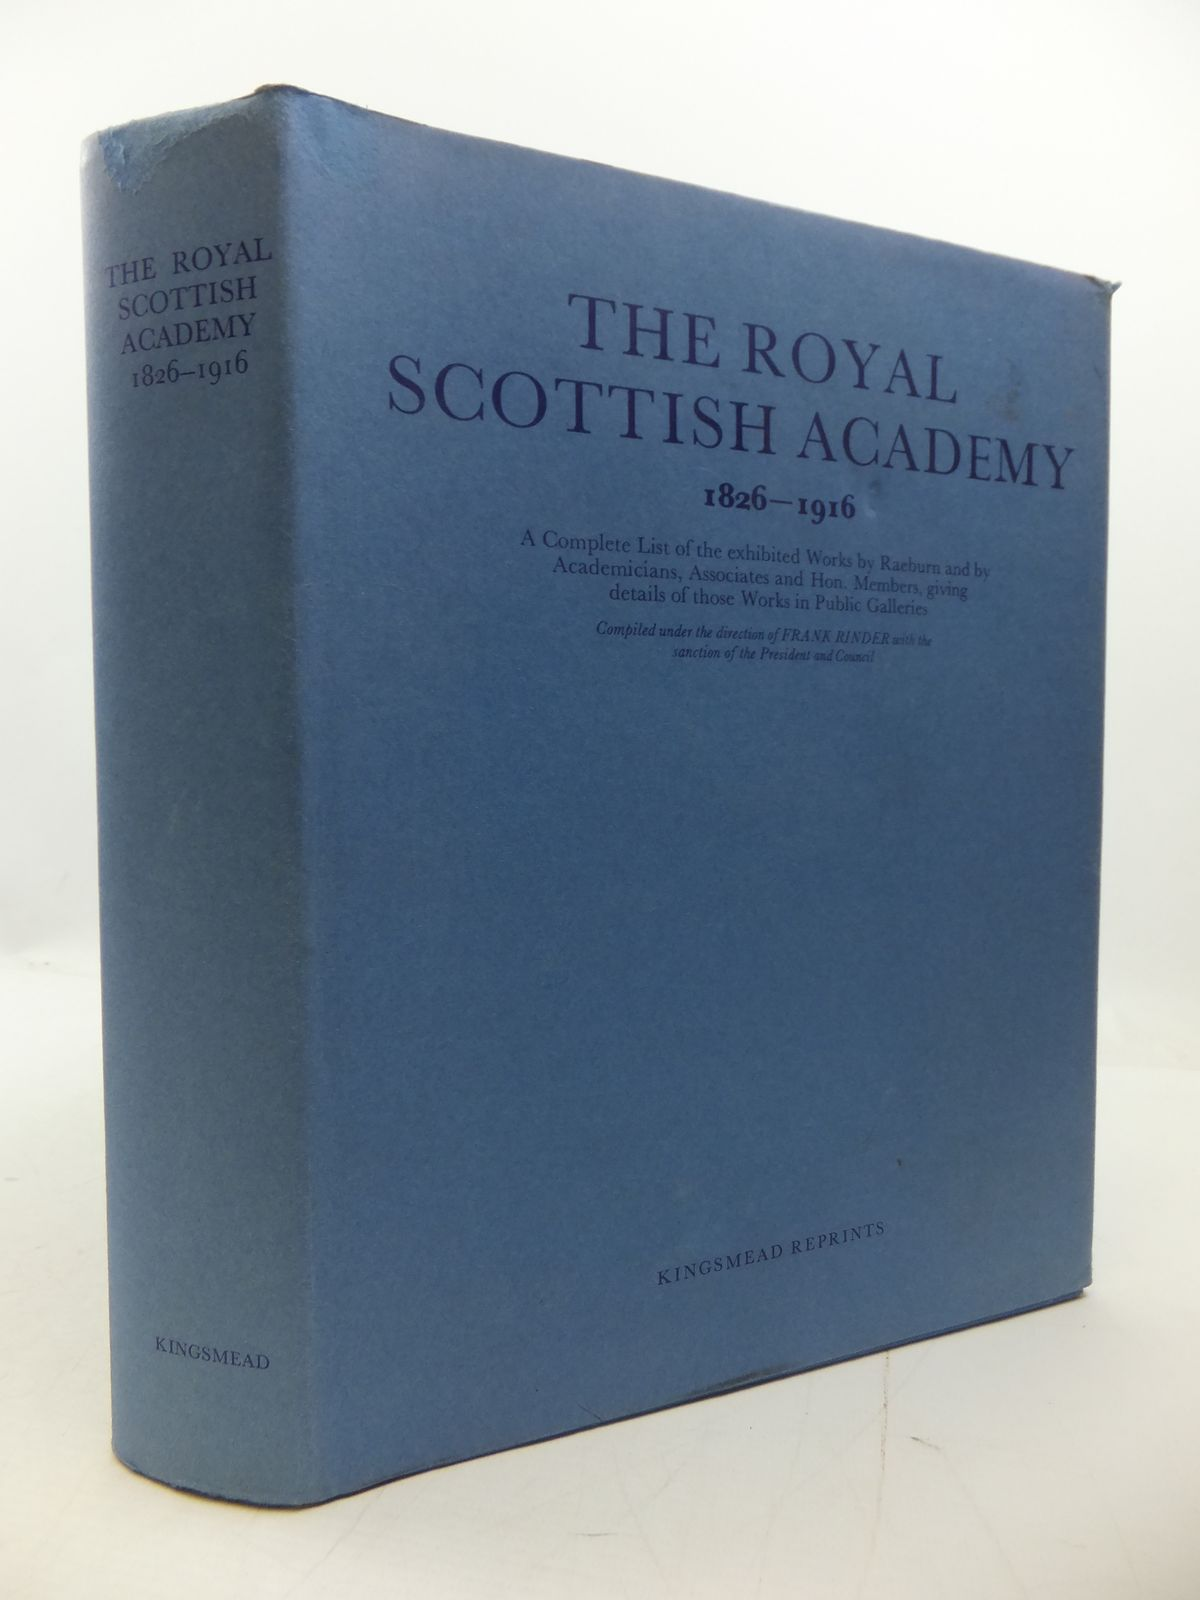 Photo of THE ROYAL SCOTTISH ACADEMY 1826-1916 written by Rinder, Frank published by Kingsmead Reprints (STOCK CODE: 1807732)  for sale by Stella & Rose's Books